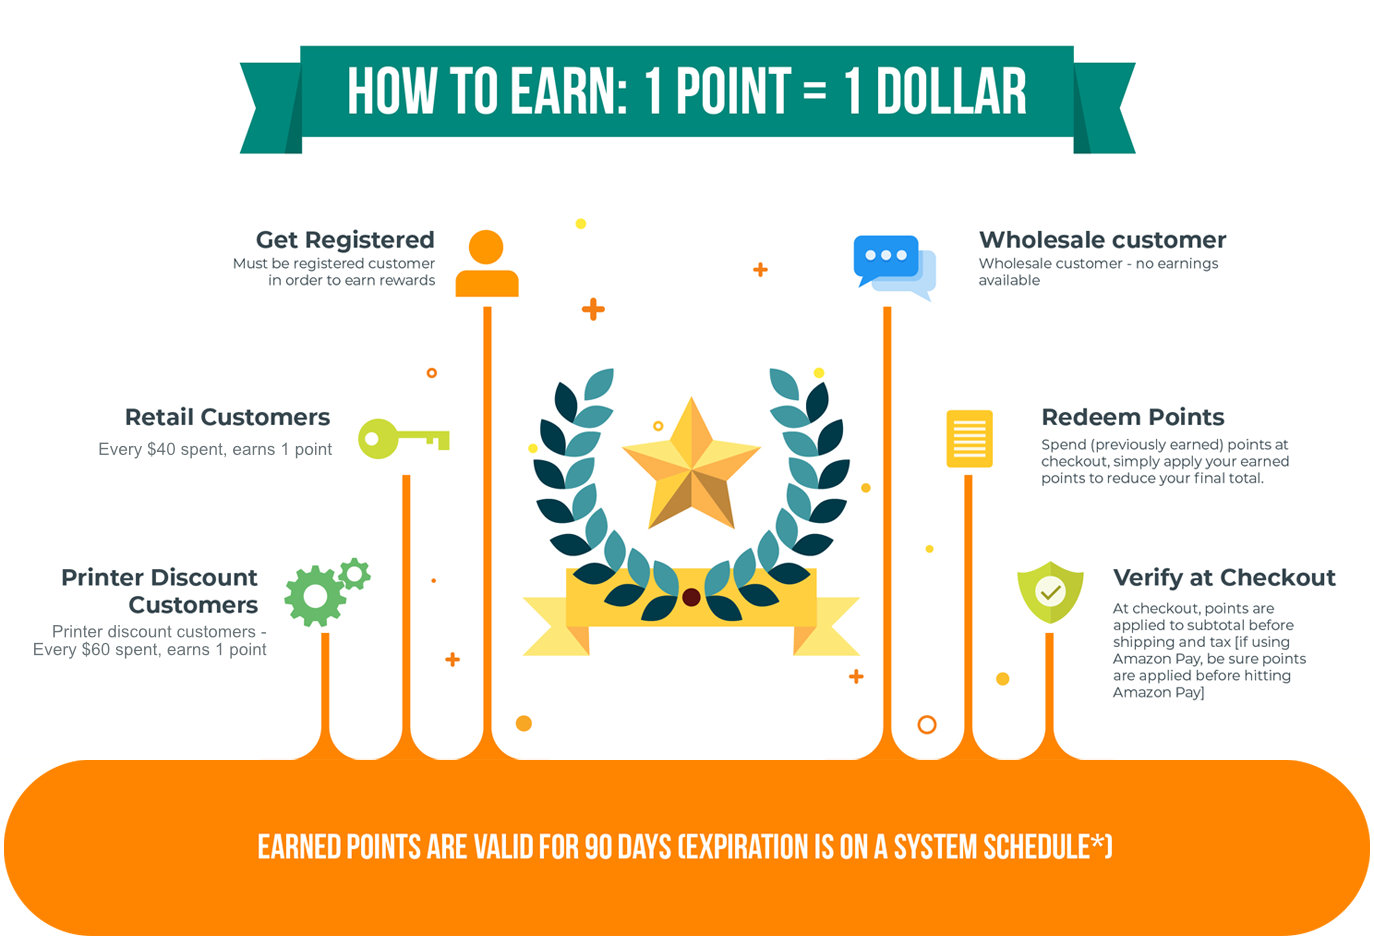 How to Earn Rewards | paperpapers.com